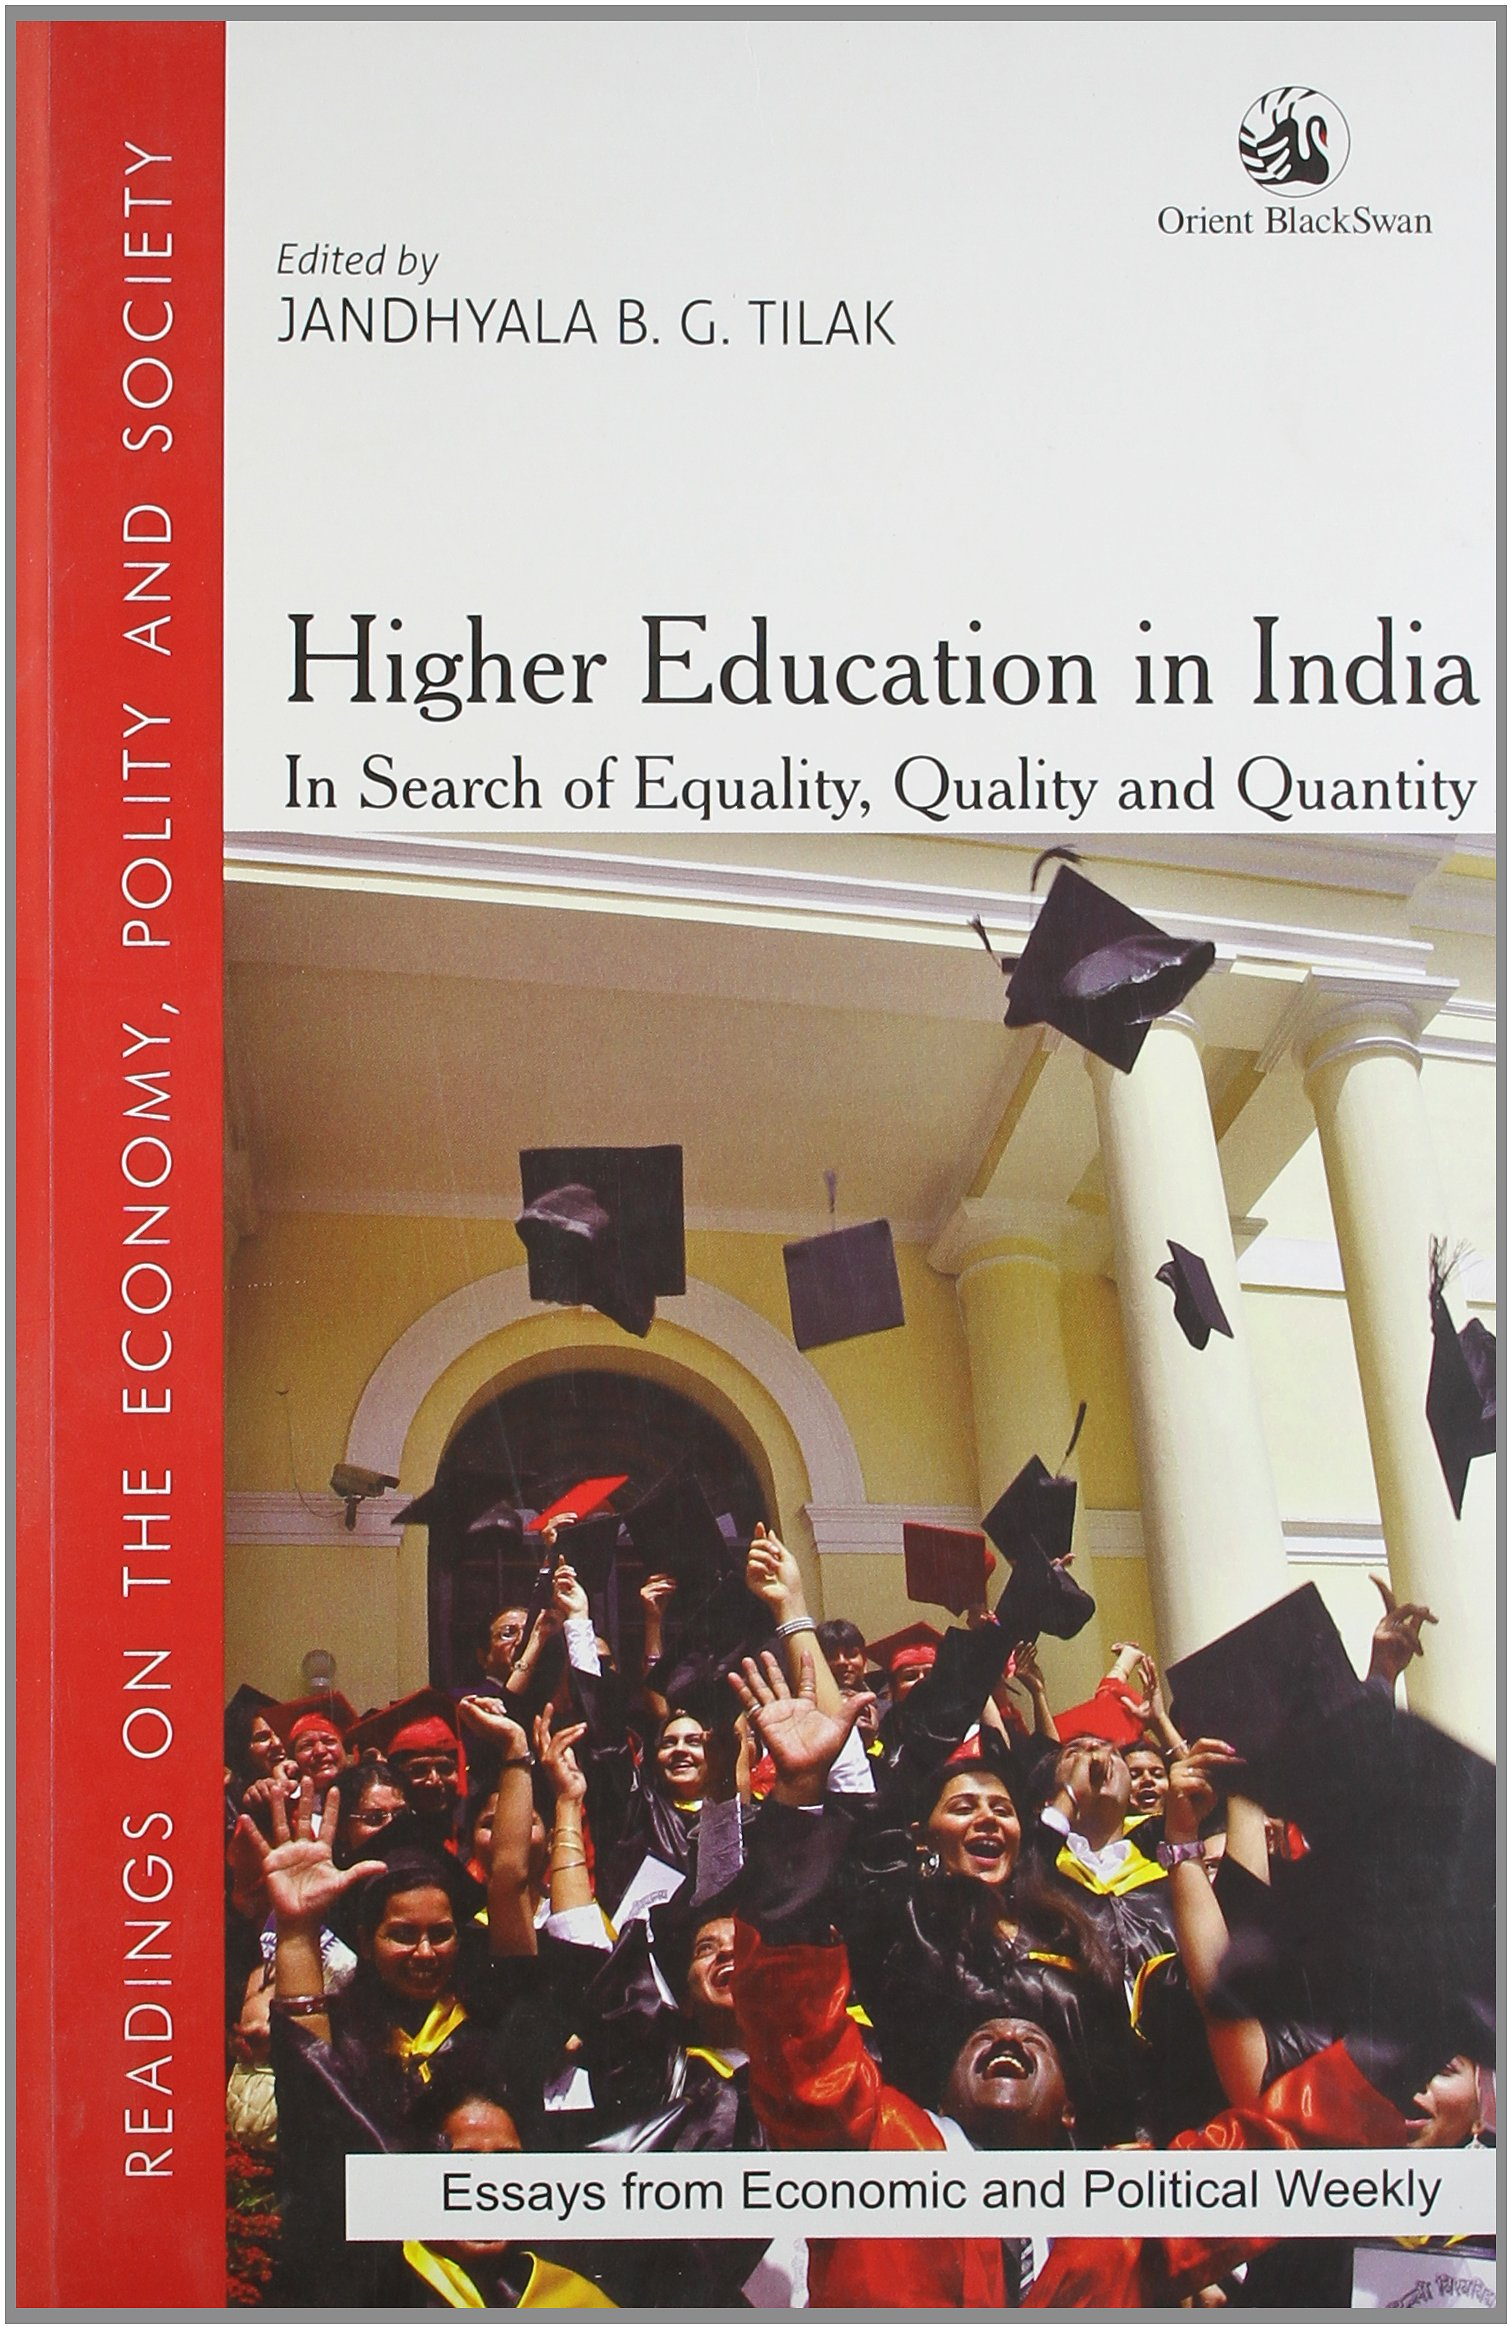 higher education 4 essay Get the latest statistics on the benefits of higher education – including graduate salaries, employment rates and more surprising benefits.